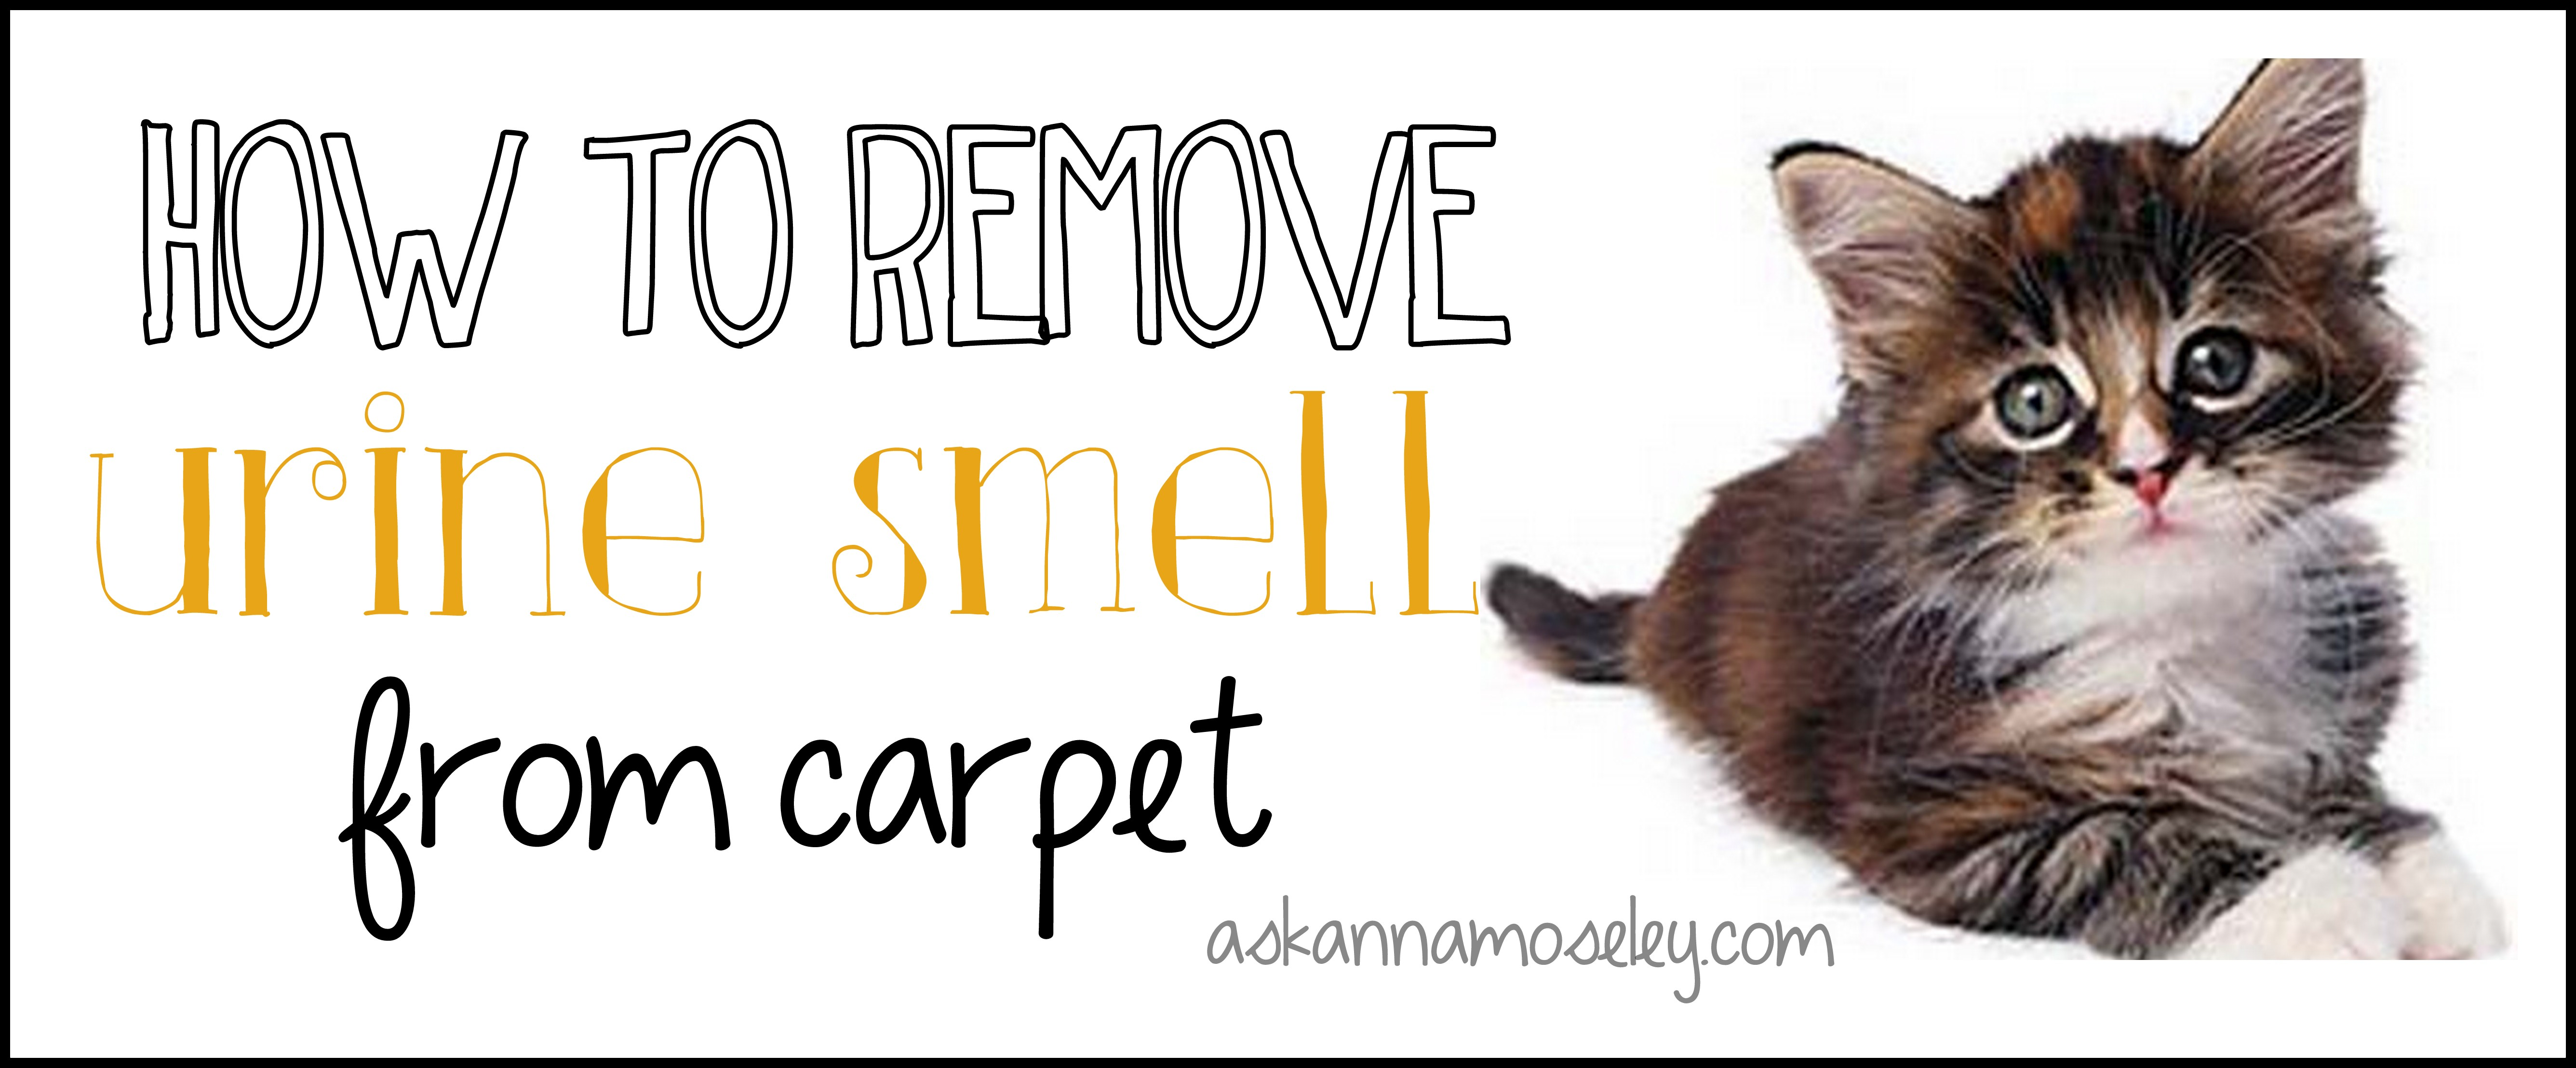 How To Remove Urine Smell From Carpet Ask Anna